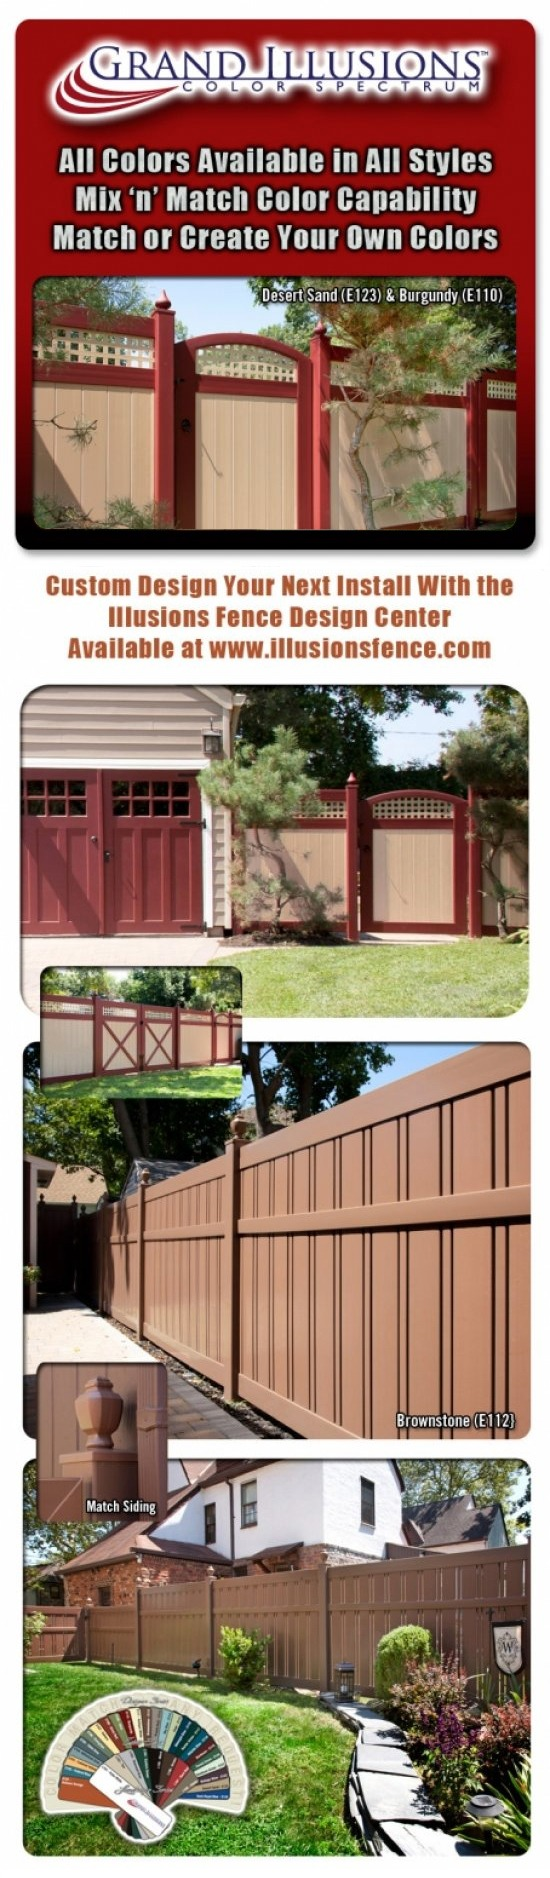 Mix and Match with Grand Illusions PVC Fence